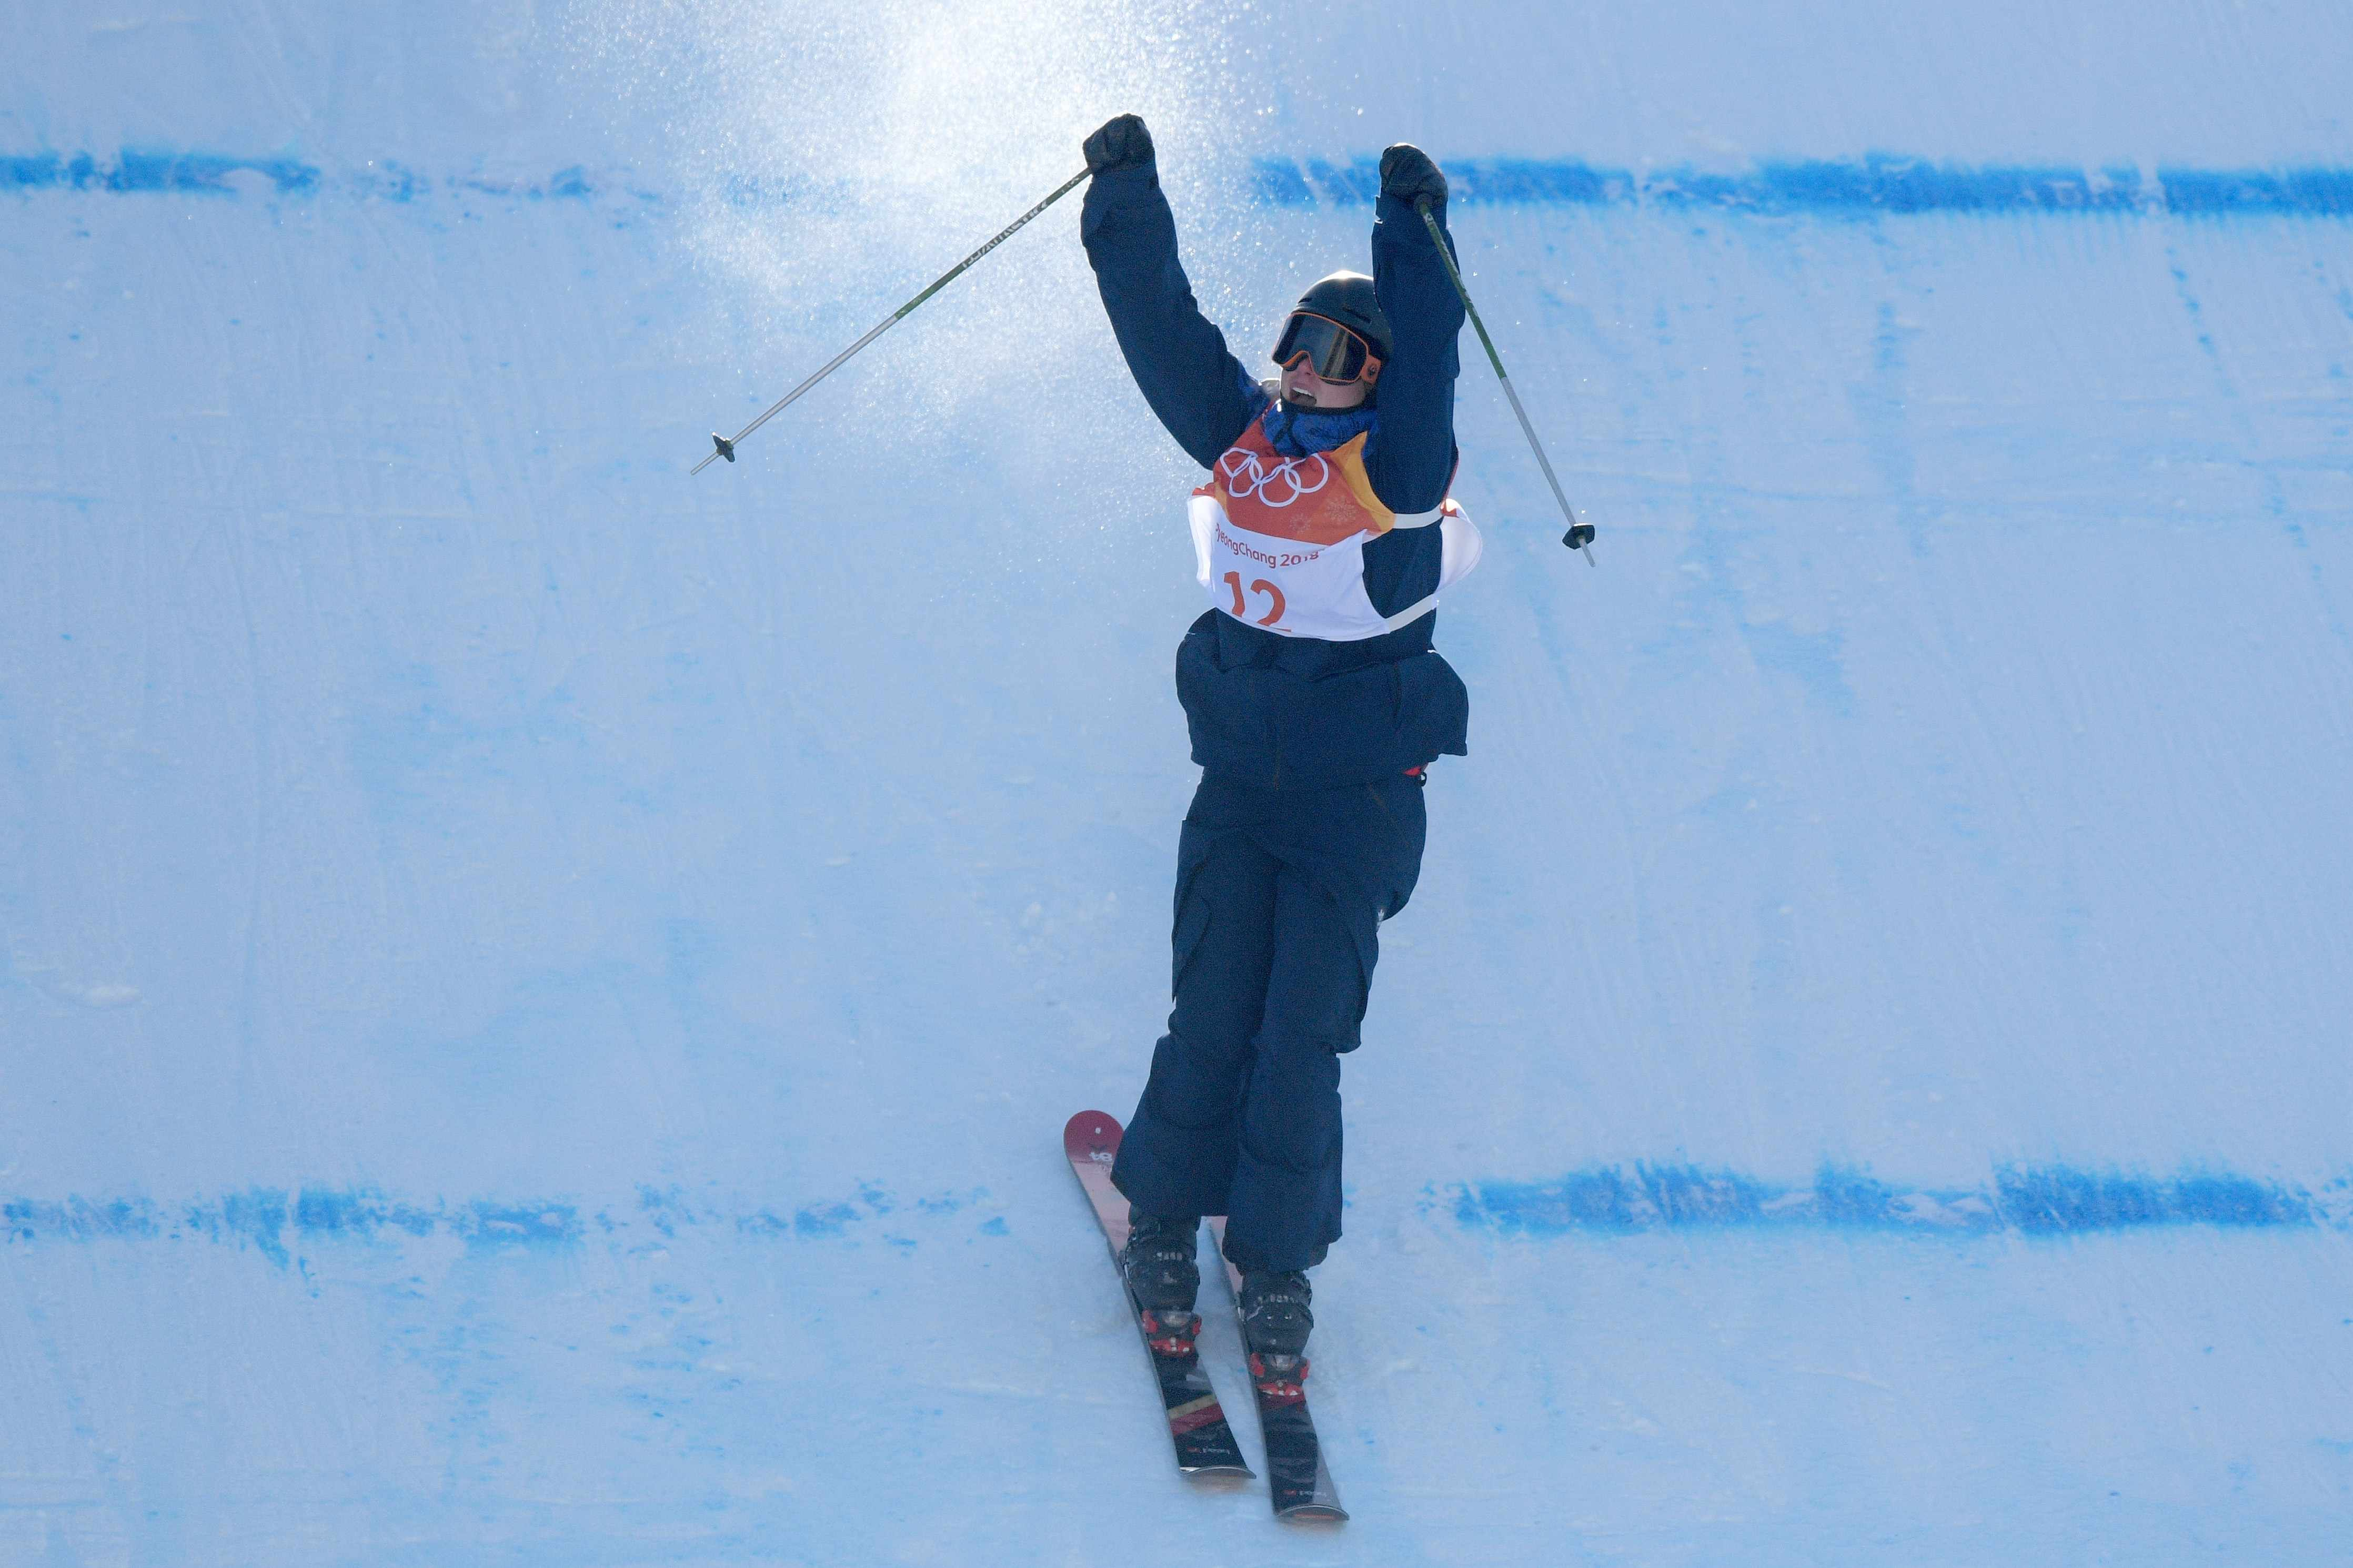 Izzy Atkin takes Team GB's first ever Winter Olympic medal on skis